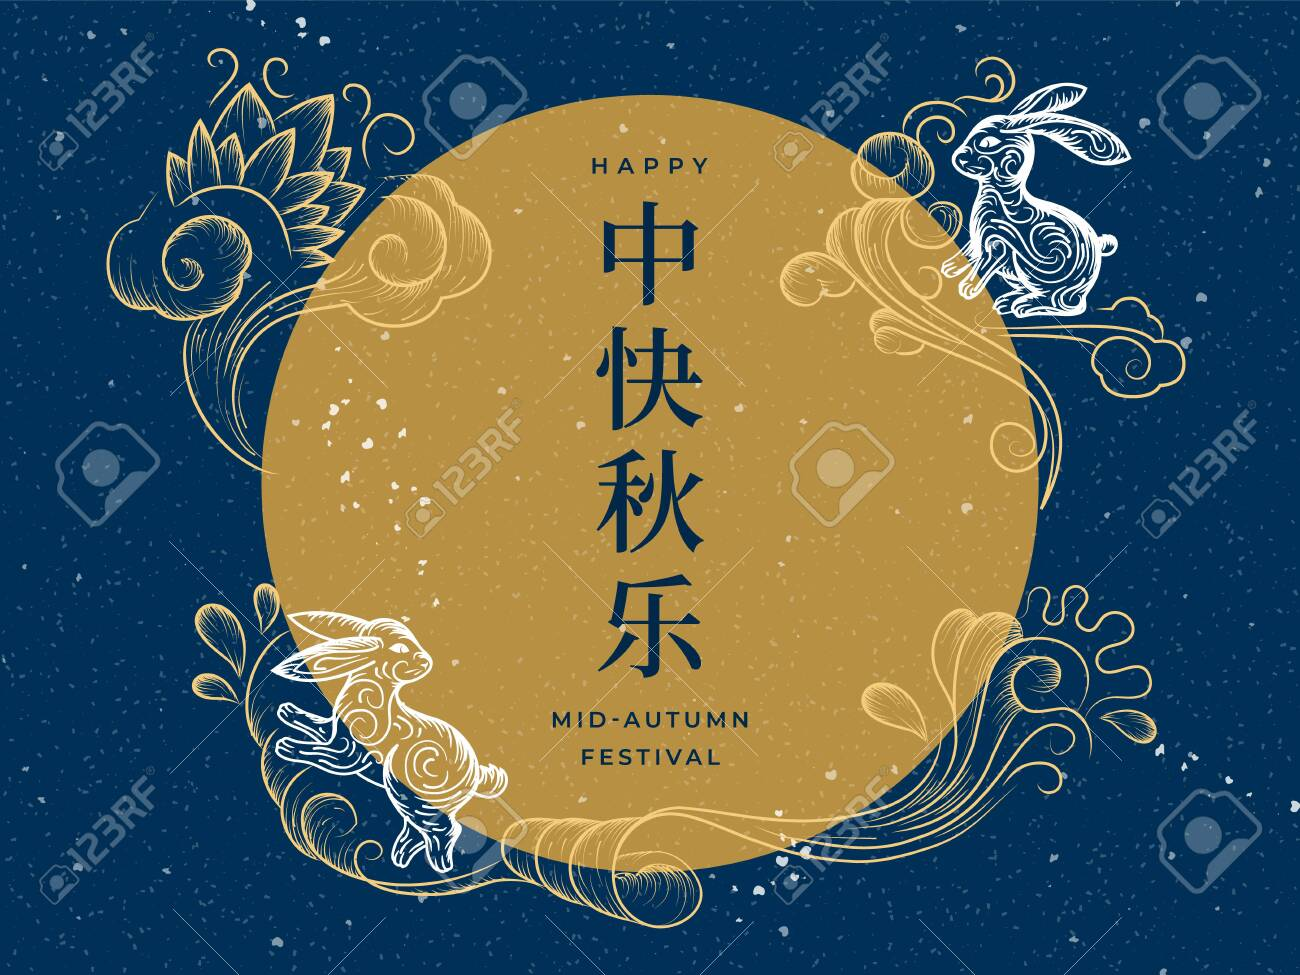 Chinese mid autumn festival background for greeting card. China calligraphy saying happy mid-autumn festival and sketch decoration of clouds with rabbit or bunny.Retro poster for Vietnam, asia holiday - 128027298